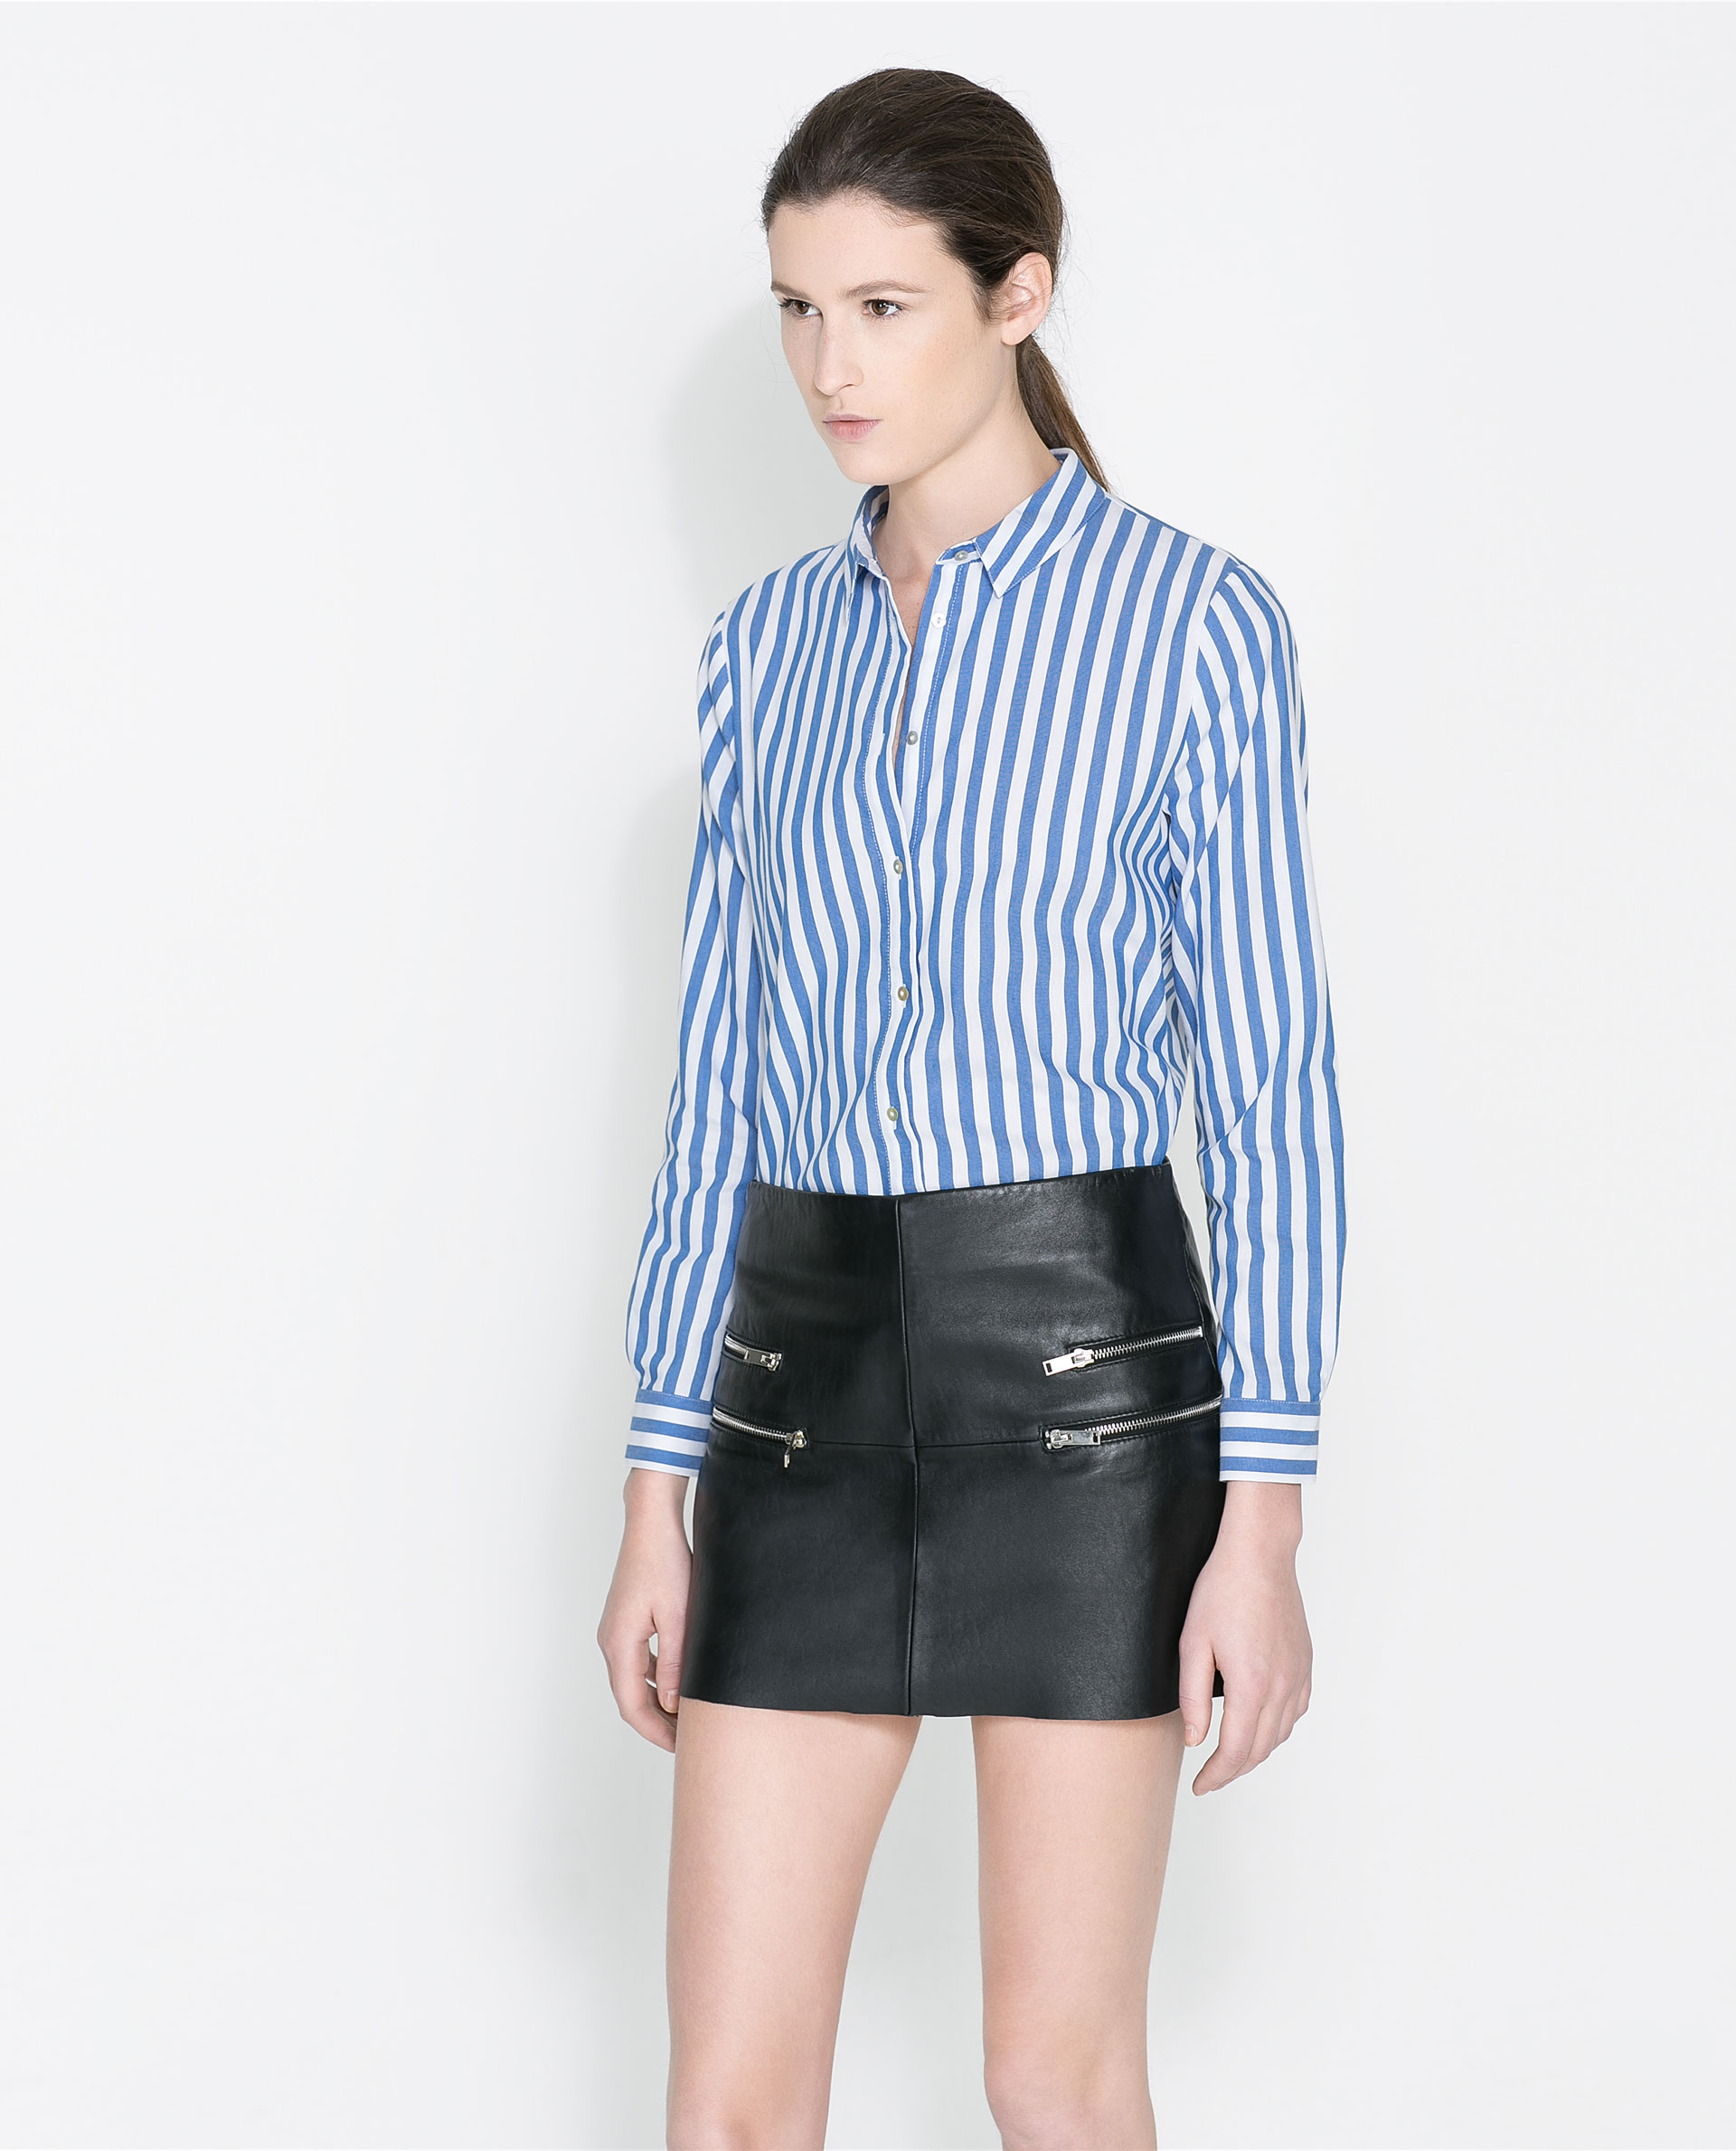 Blue striped blouse fashion ql for Blue and white striped shirt with white collar